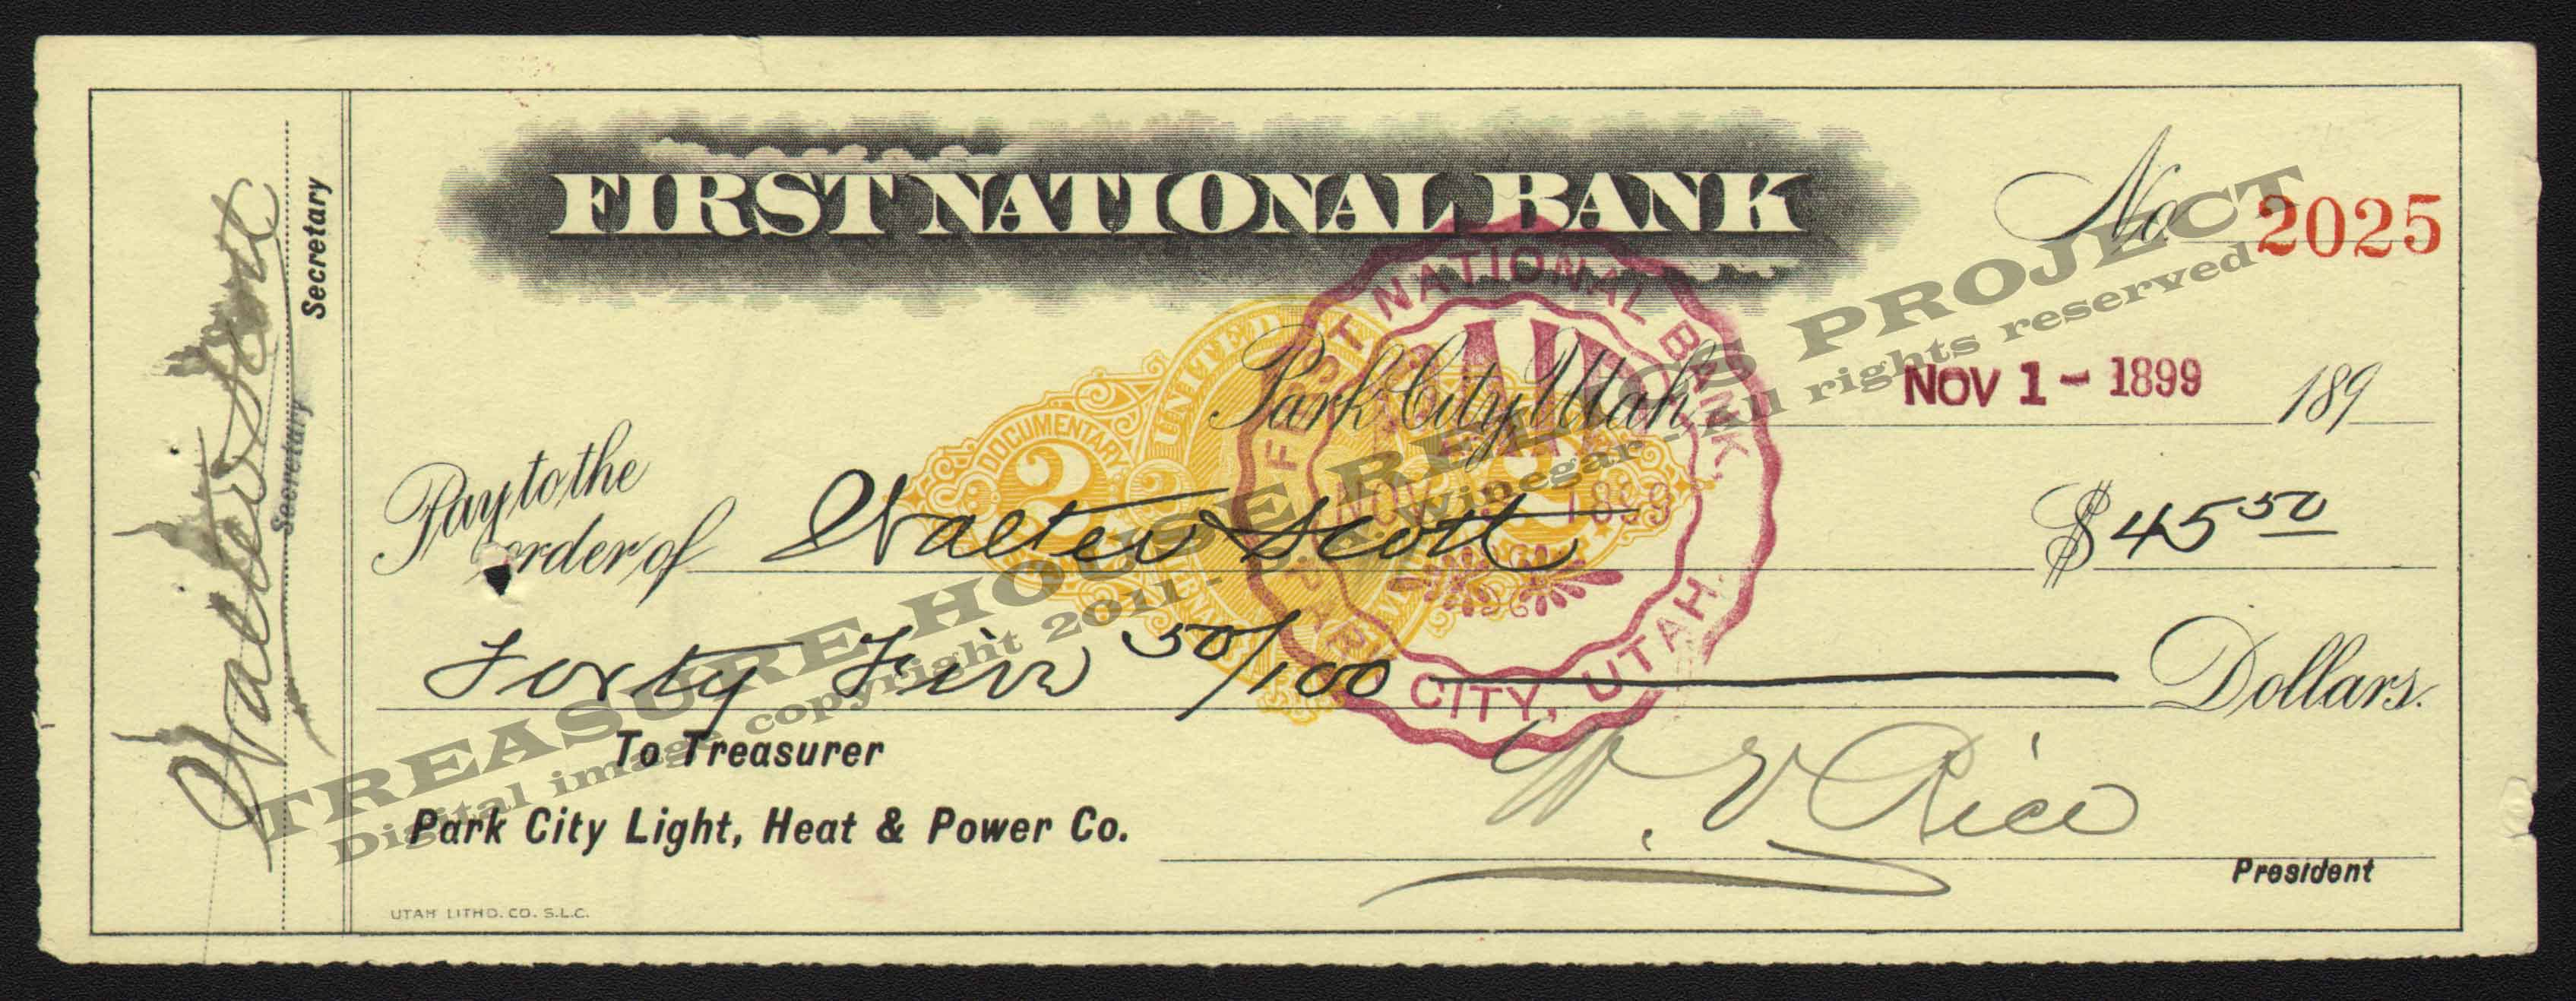 CHECK_-_FIRST_NATIONAL_BANK_2025_1899_400_EMBOSS.jpg